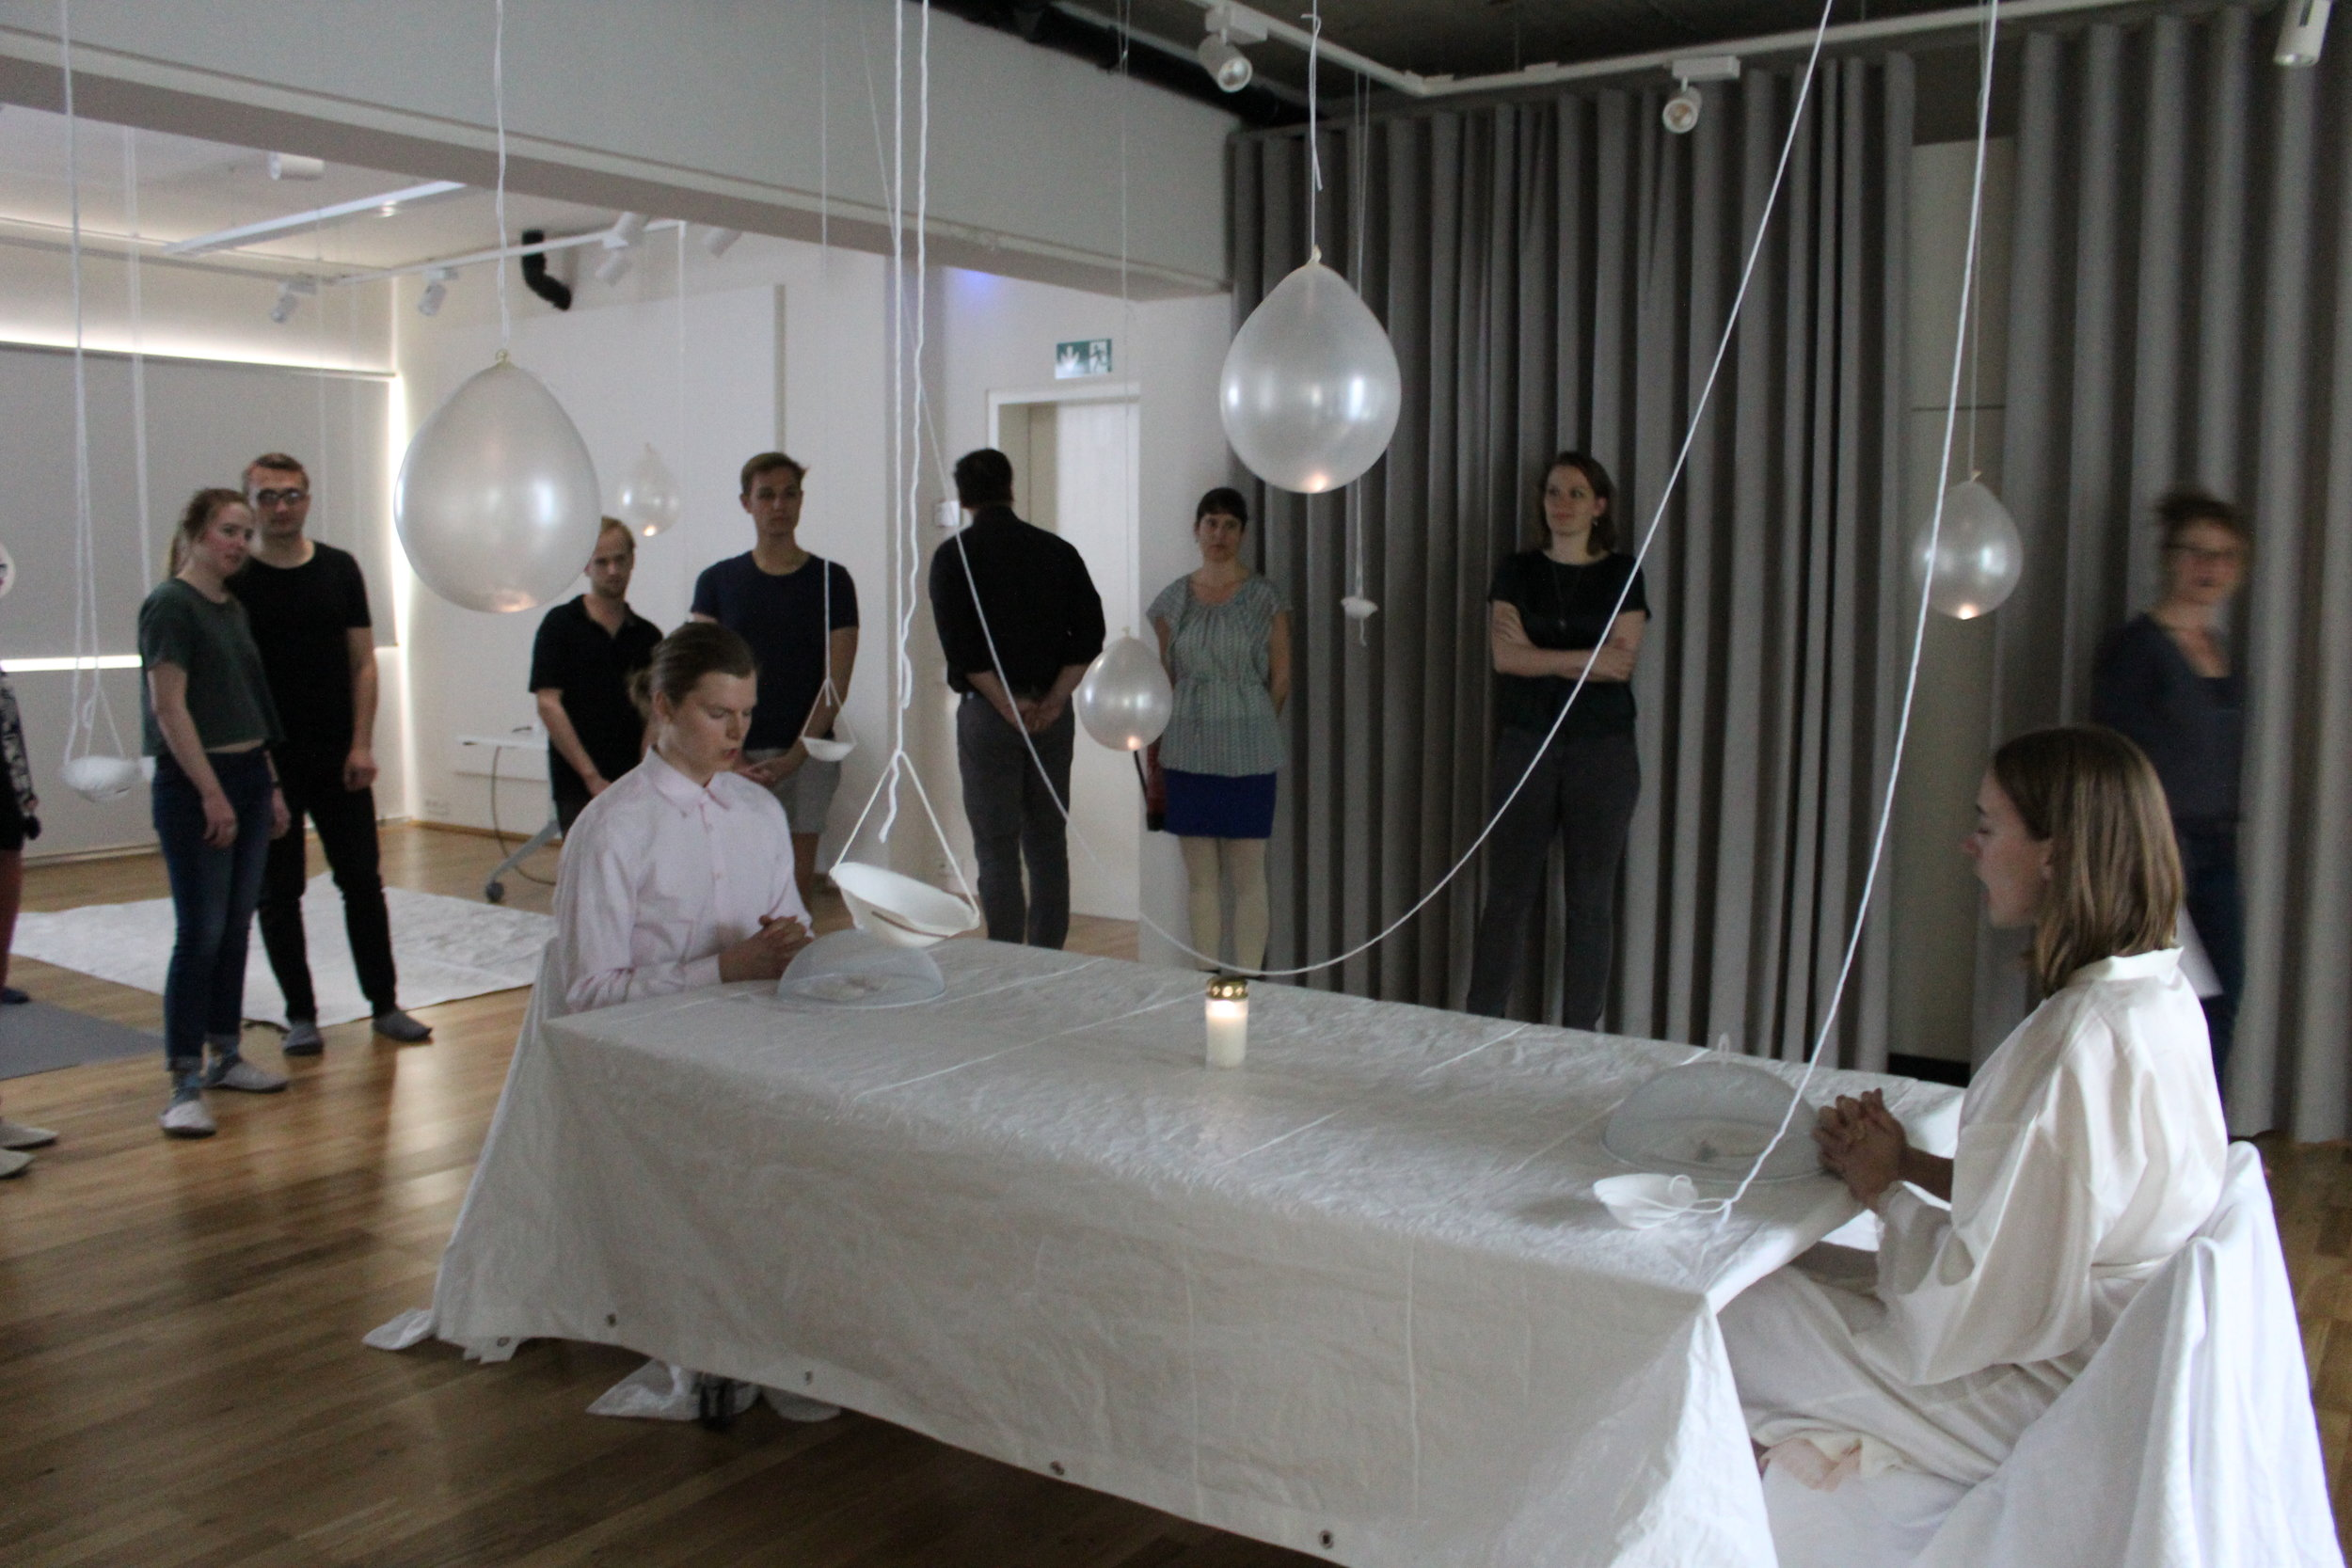 FITTER//HAPPIER   based off of HE WHO SAYS YES by Bertolt Brecht  directed by Enrico Stolzenberg, devised by us